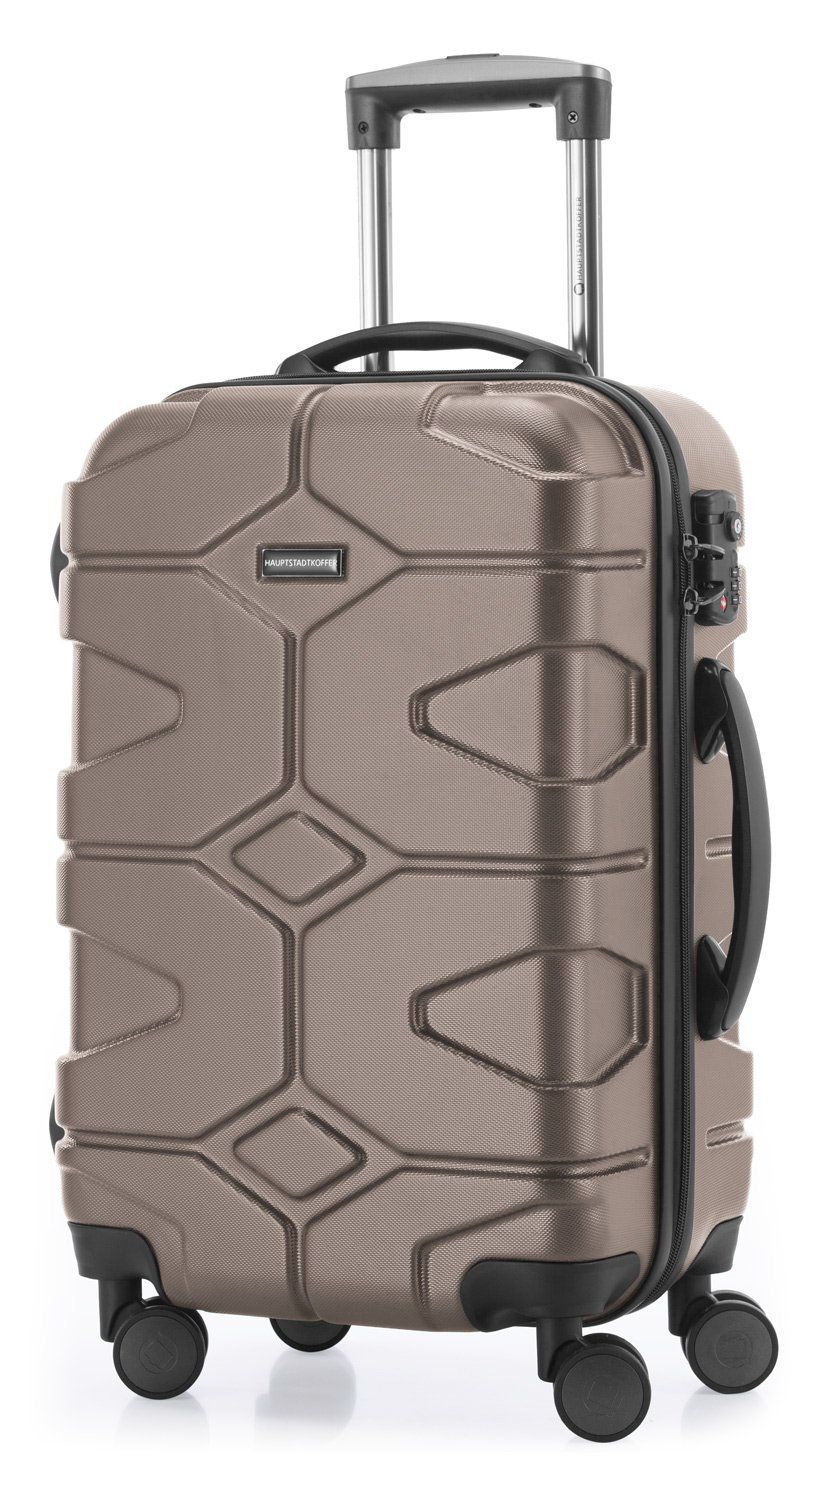 HAUPTSTADTKOFFER - X-Kölln - Bagage à main cabine Valise Trolley 4 roues extensible, TSA, 55 cm, 50 litres, Camouflage